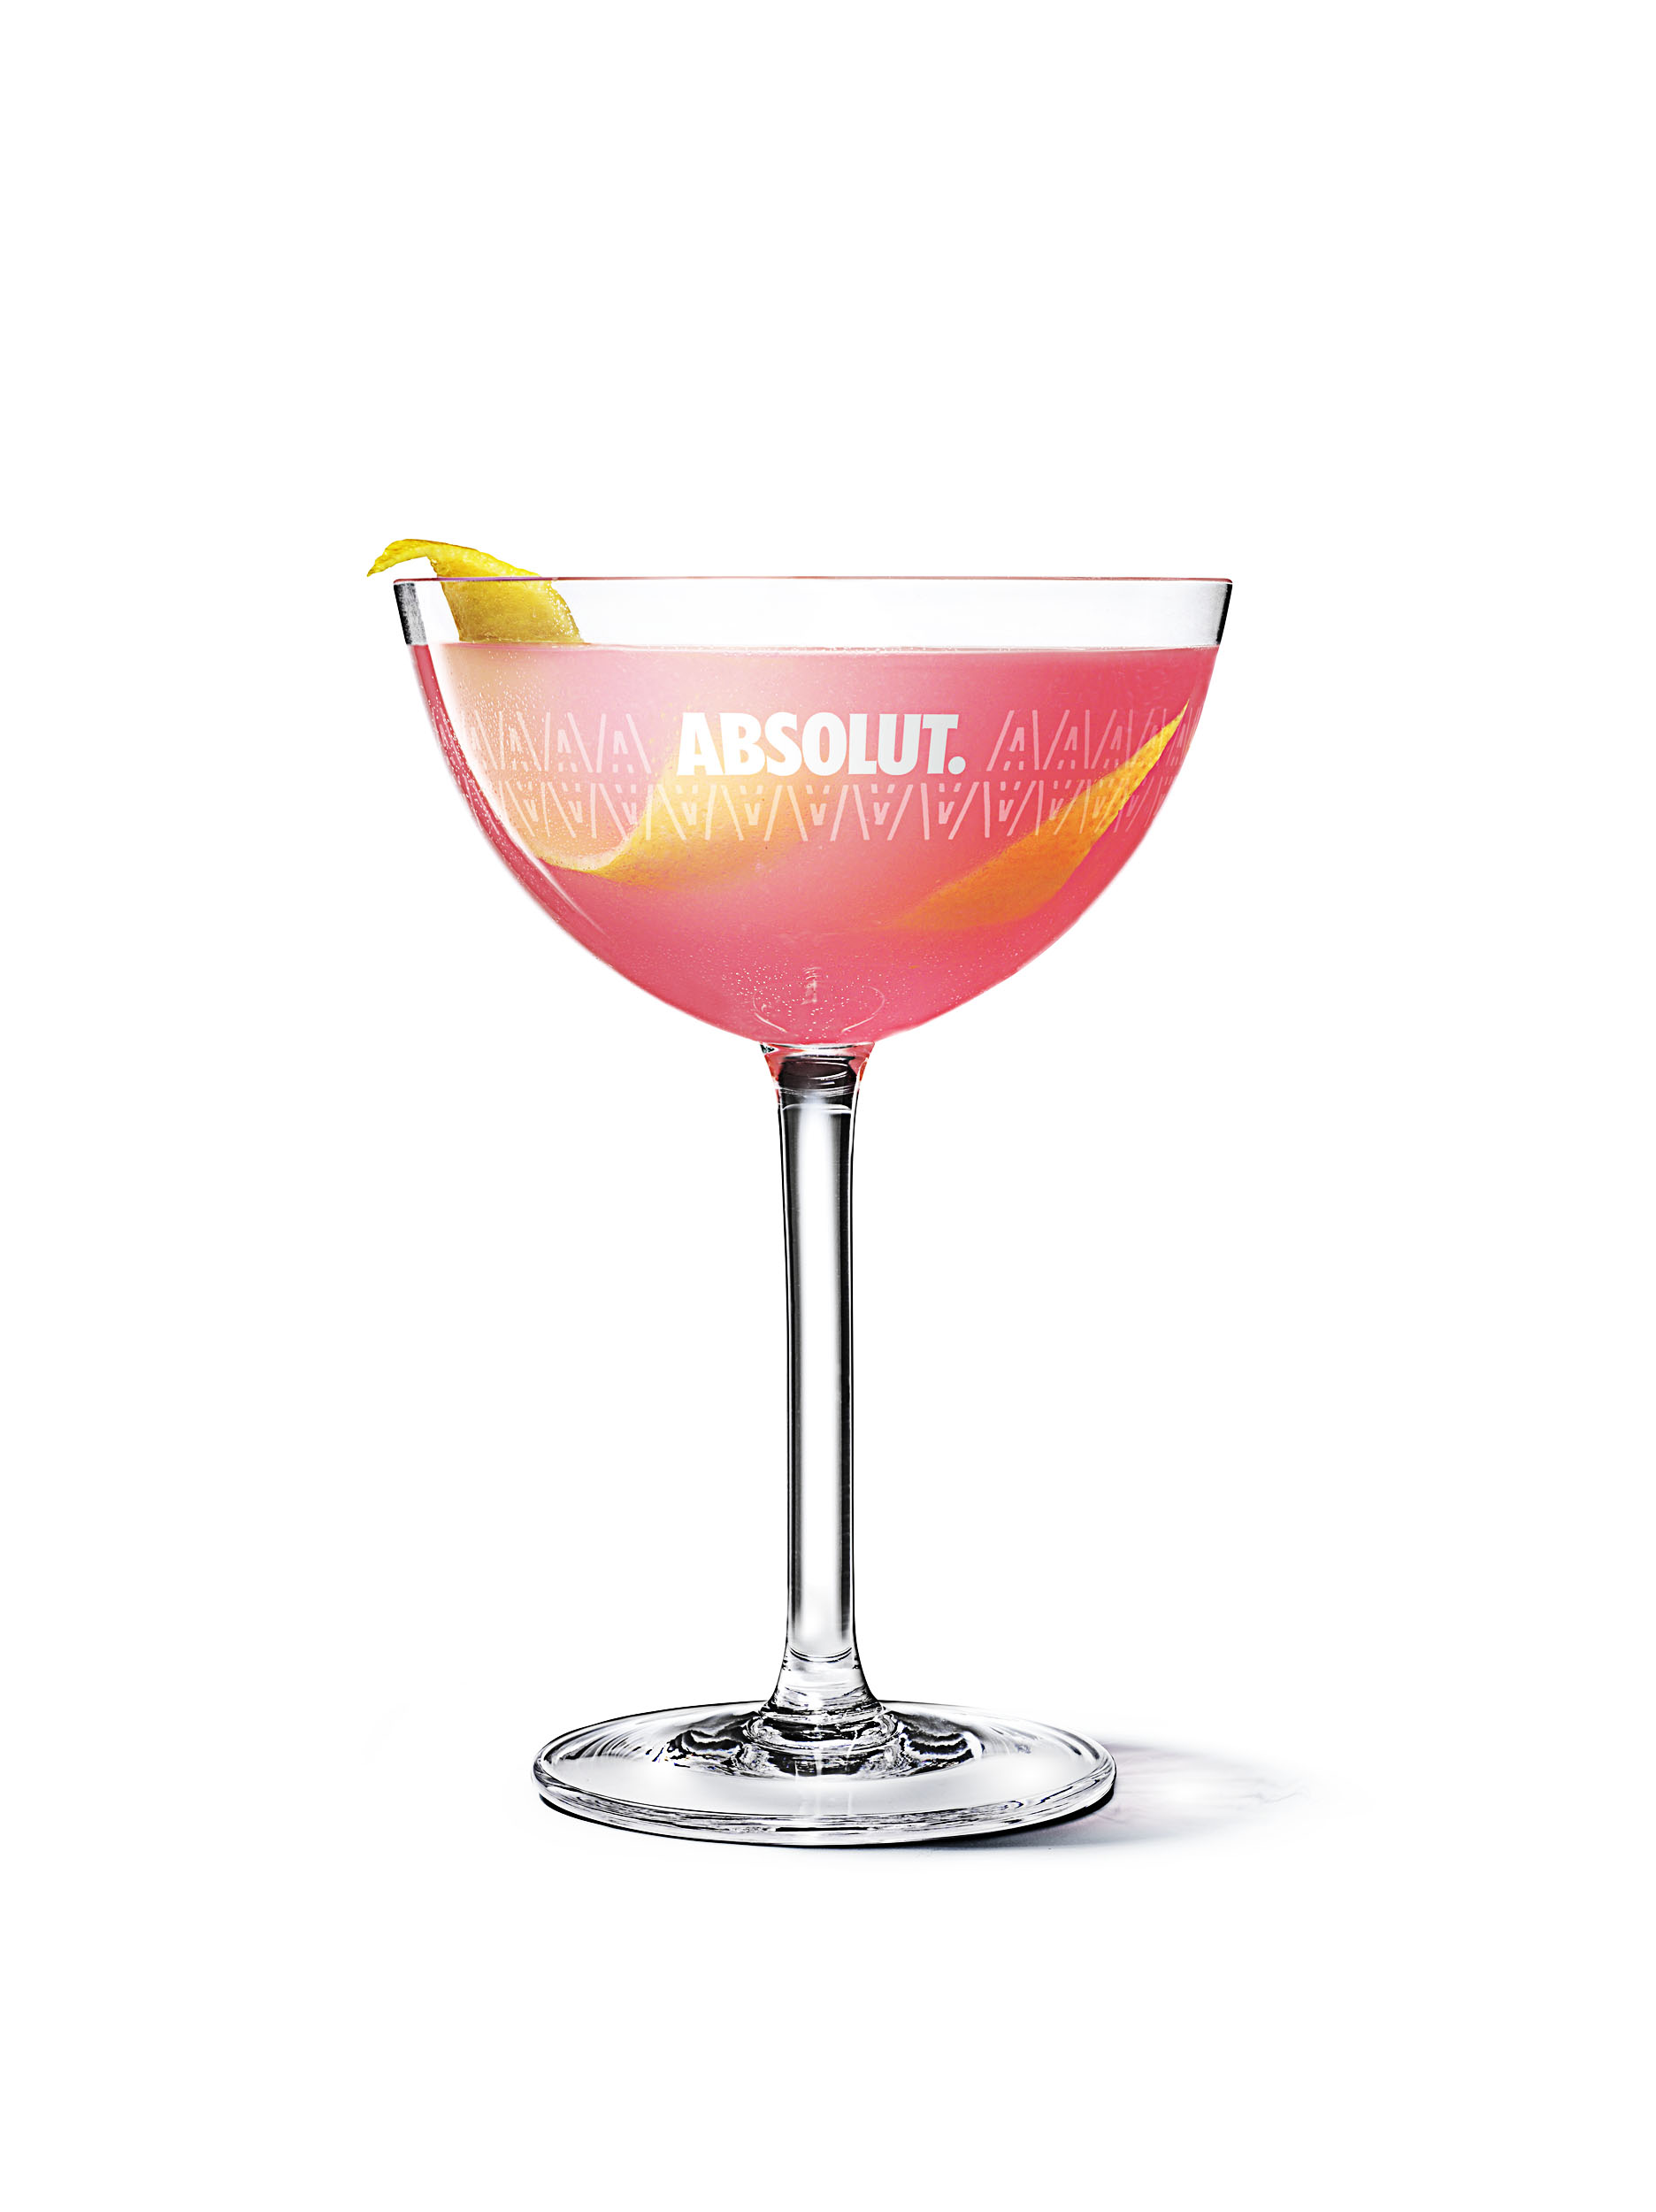 jensmortensen-absolut-vodka-c8118c82